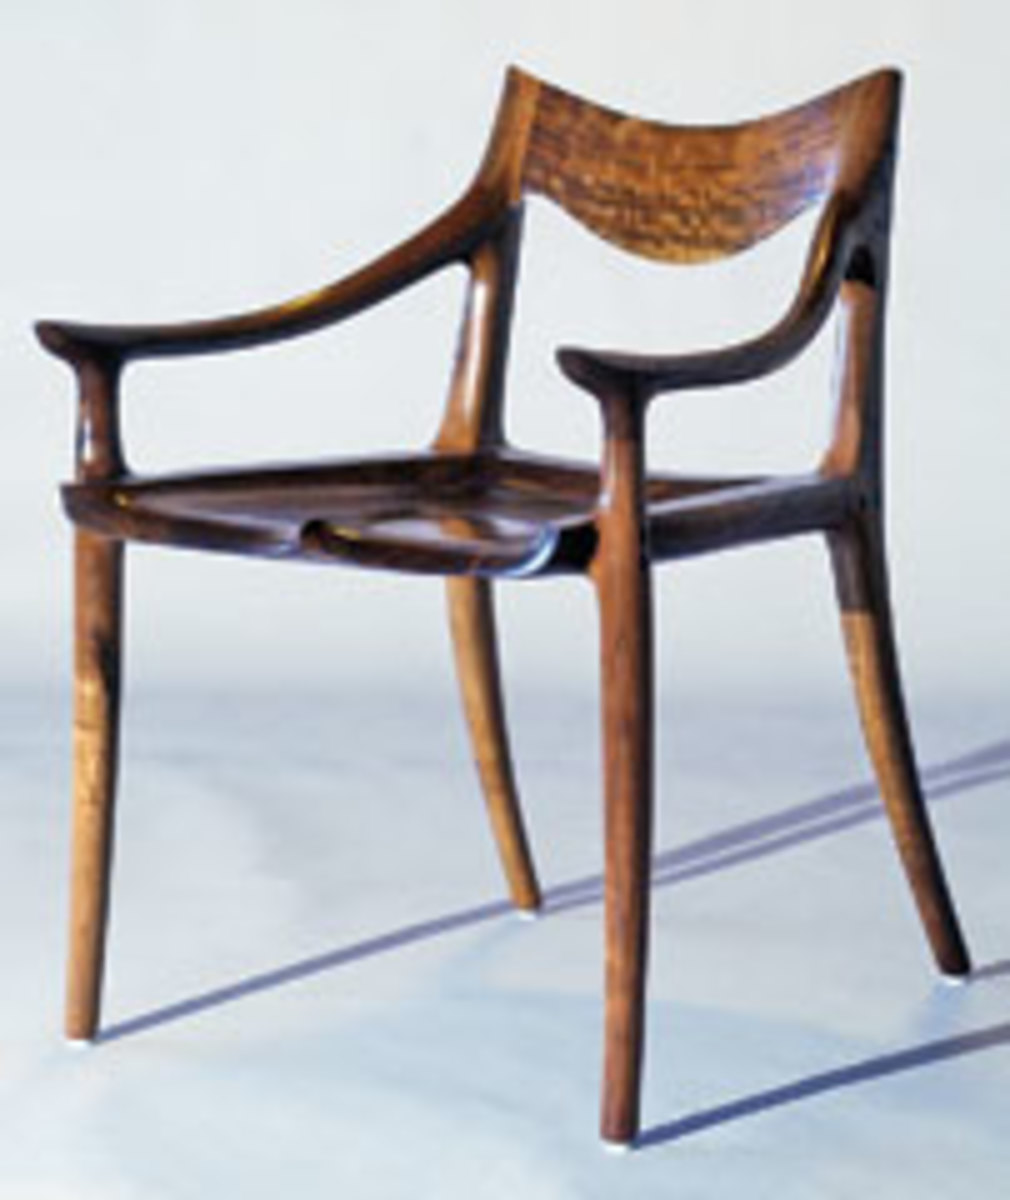 This 2006 walnut low-back dining chair is classic Sam Maloof and will be shown at the Fuller Craft Museum.